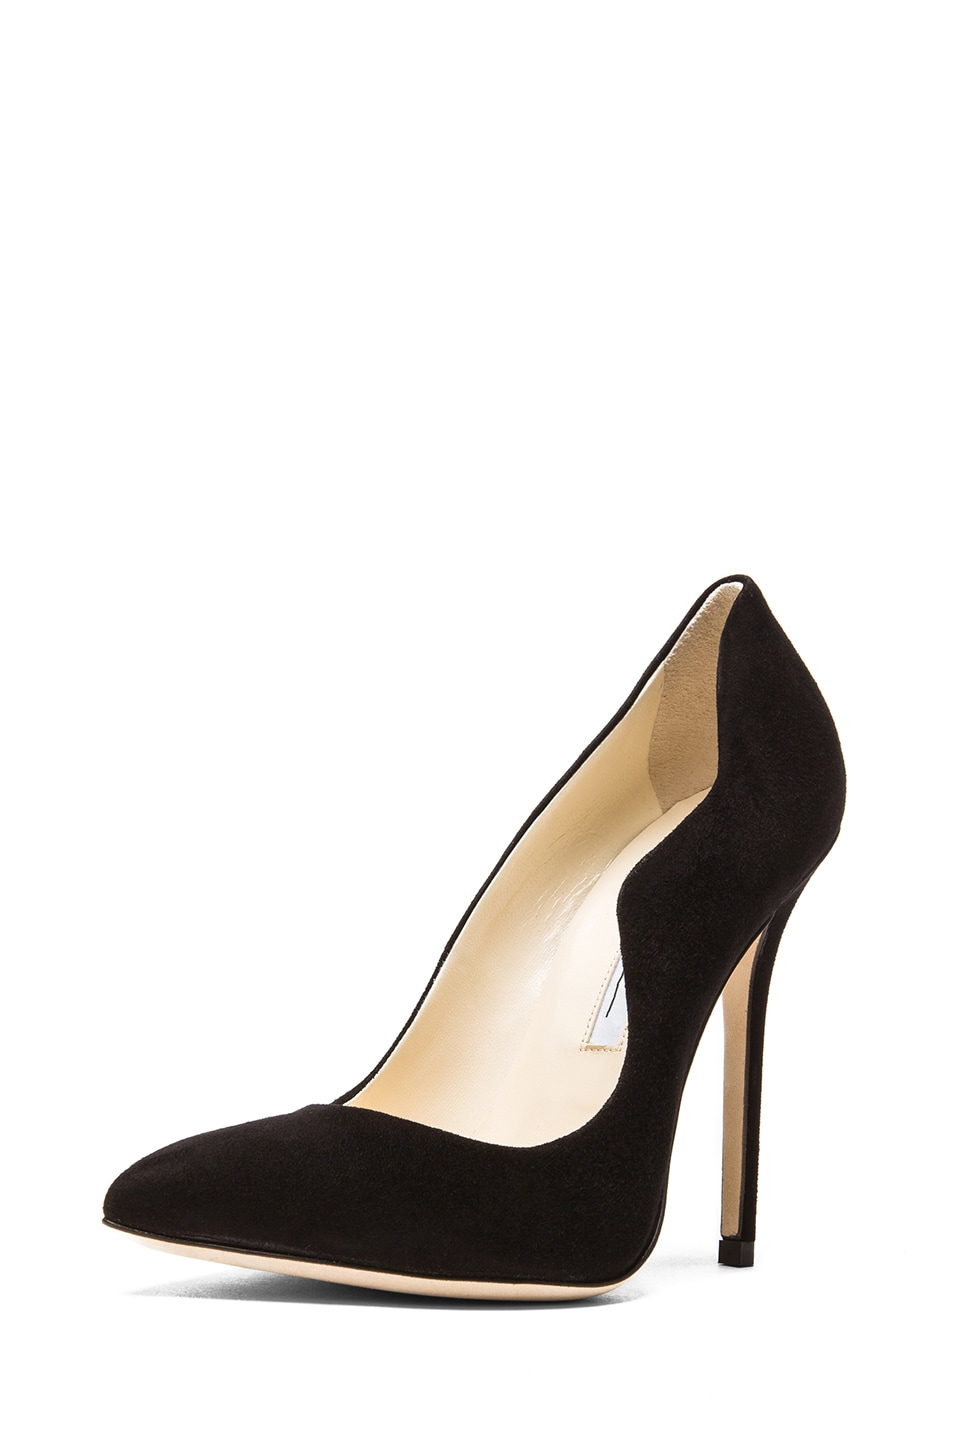 Image 2 of Brian Atwood Besame Suede Pumps in Black Suede